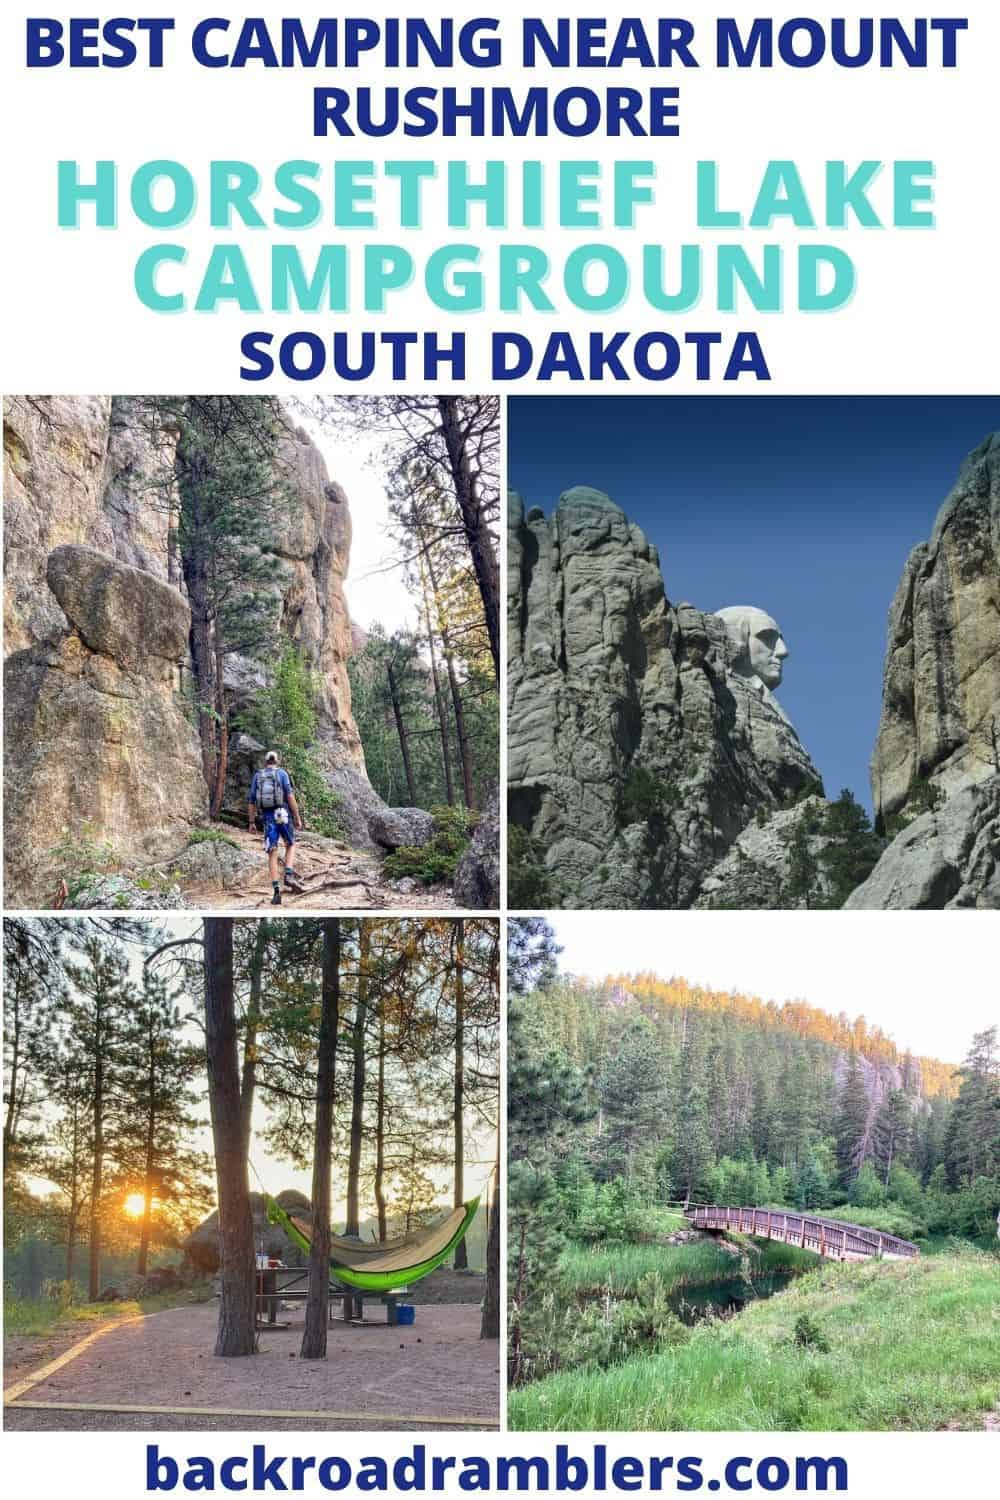 A collage of photos featuring campgrounds near Mount Rushmore in South Dakota.